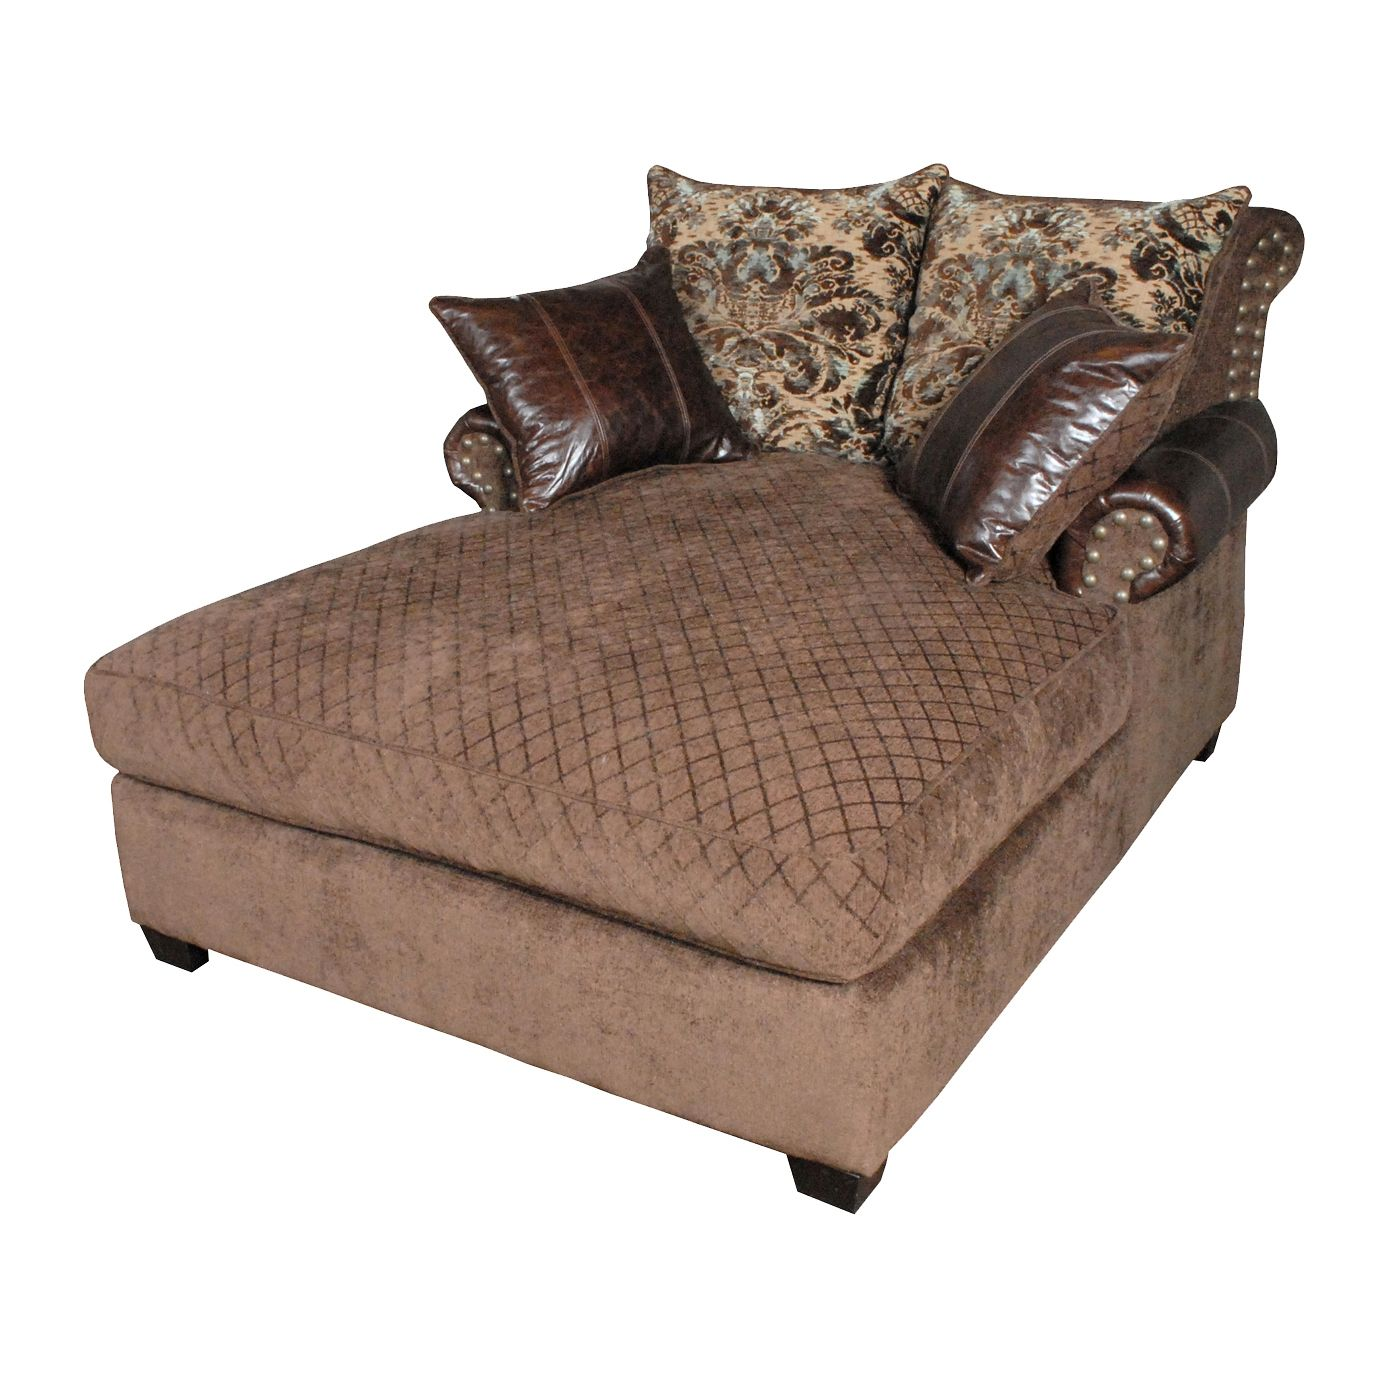 - New Dimensions BNIBKC Brittany-N King Chaise At ATG Stores